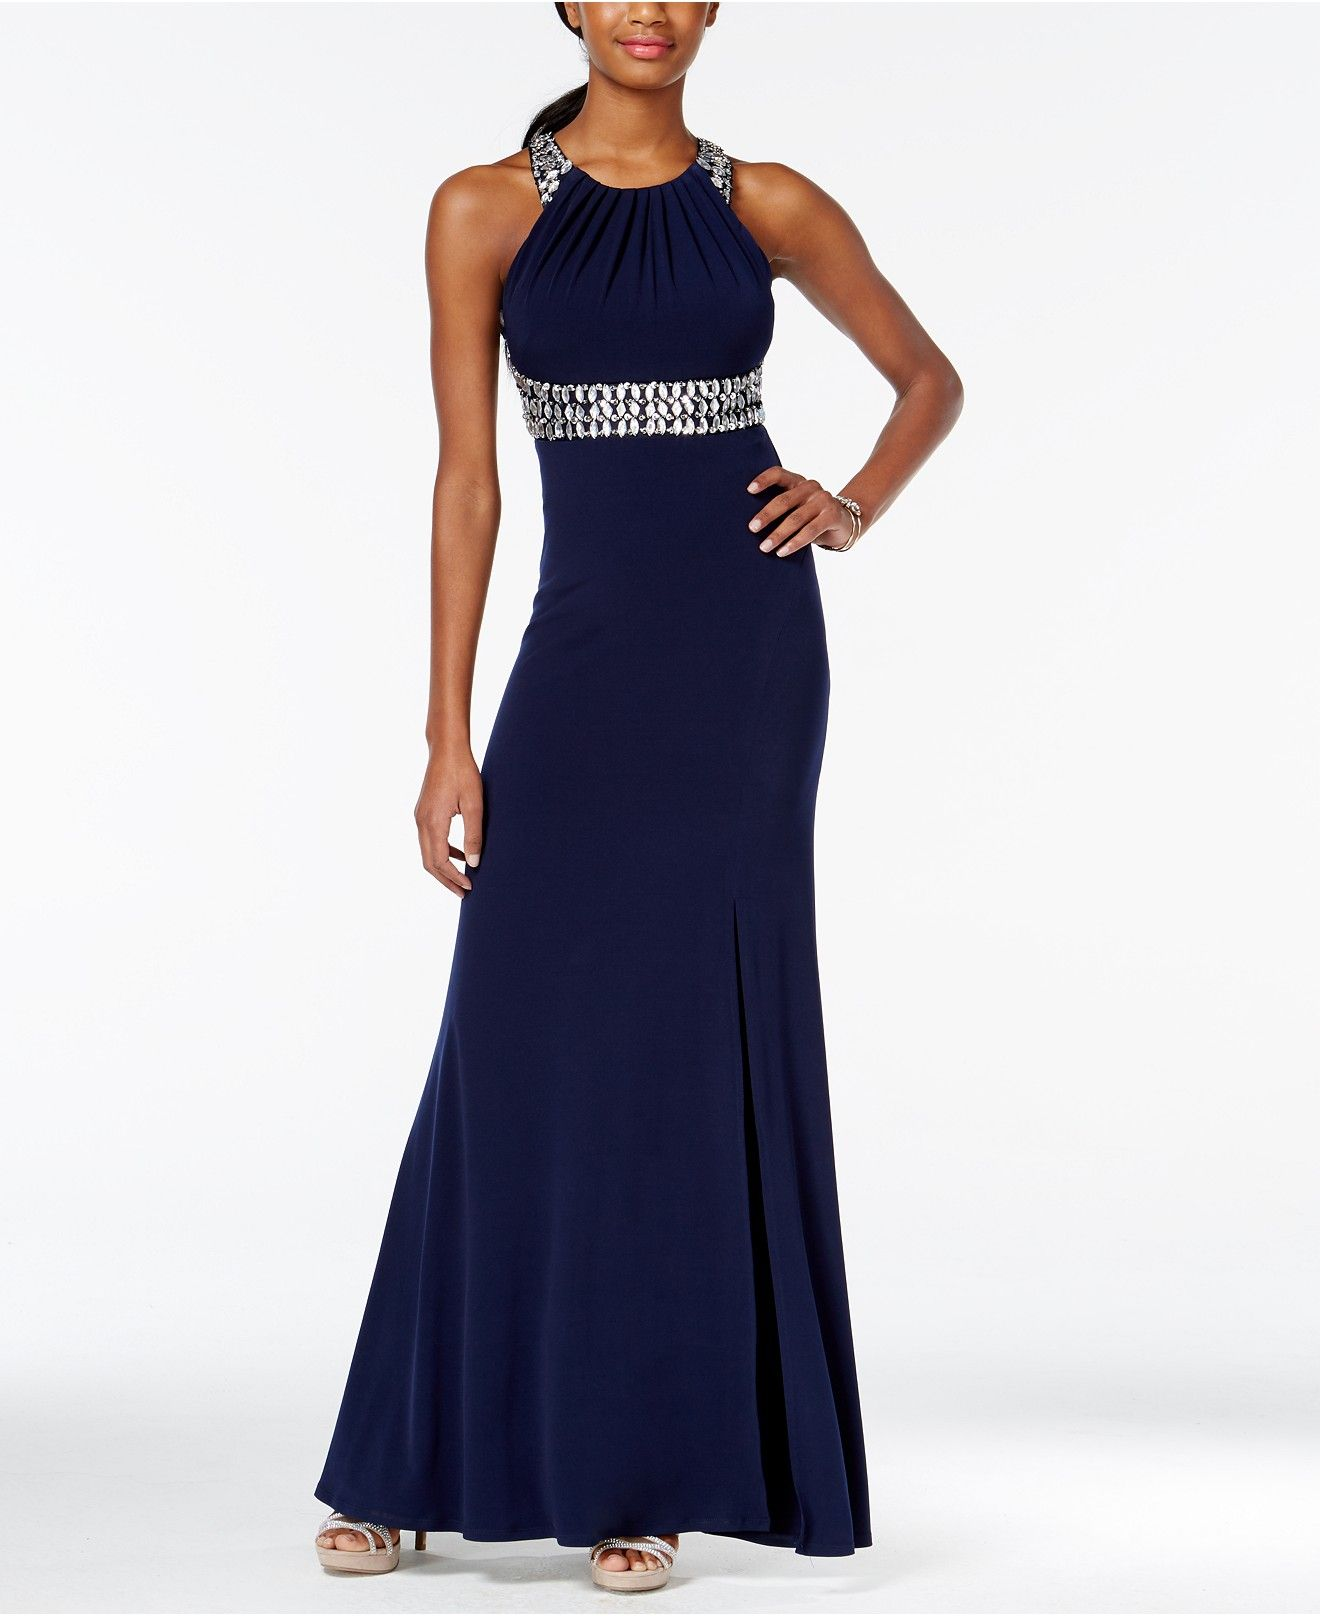 Sequin Hearts Juniors' Bejeweled Ruched Mermaid Gown with Side Slit - Juniors Prom Preview - Macy's